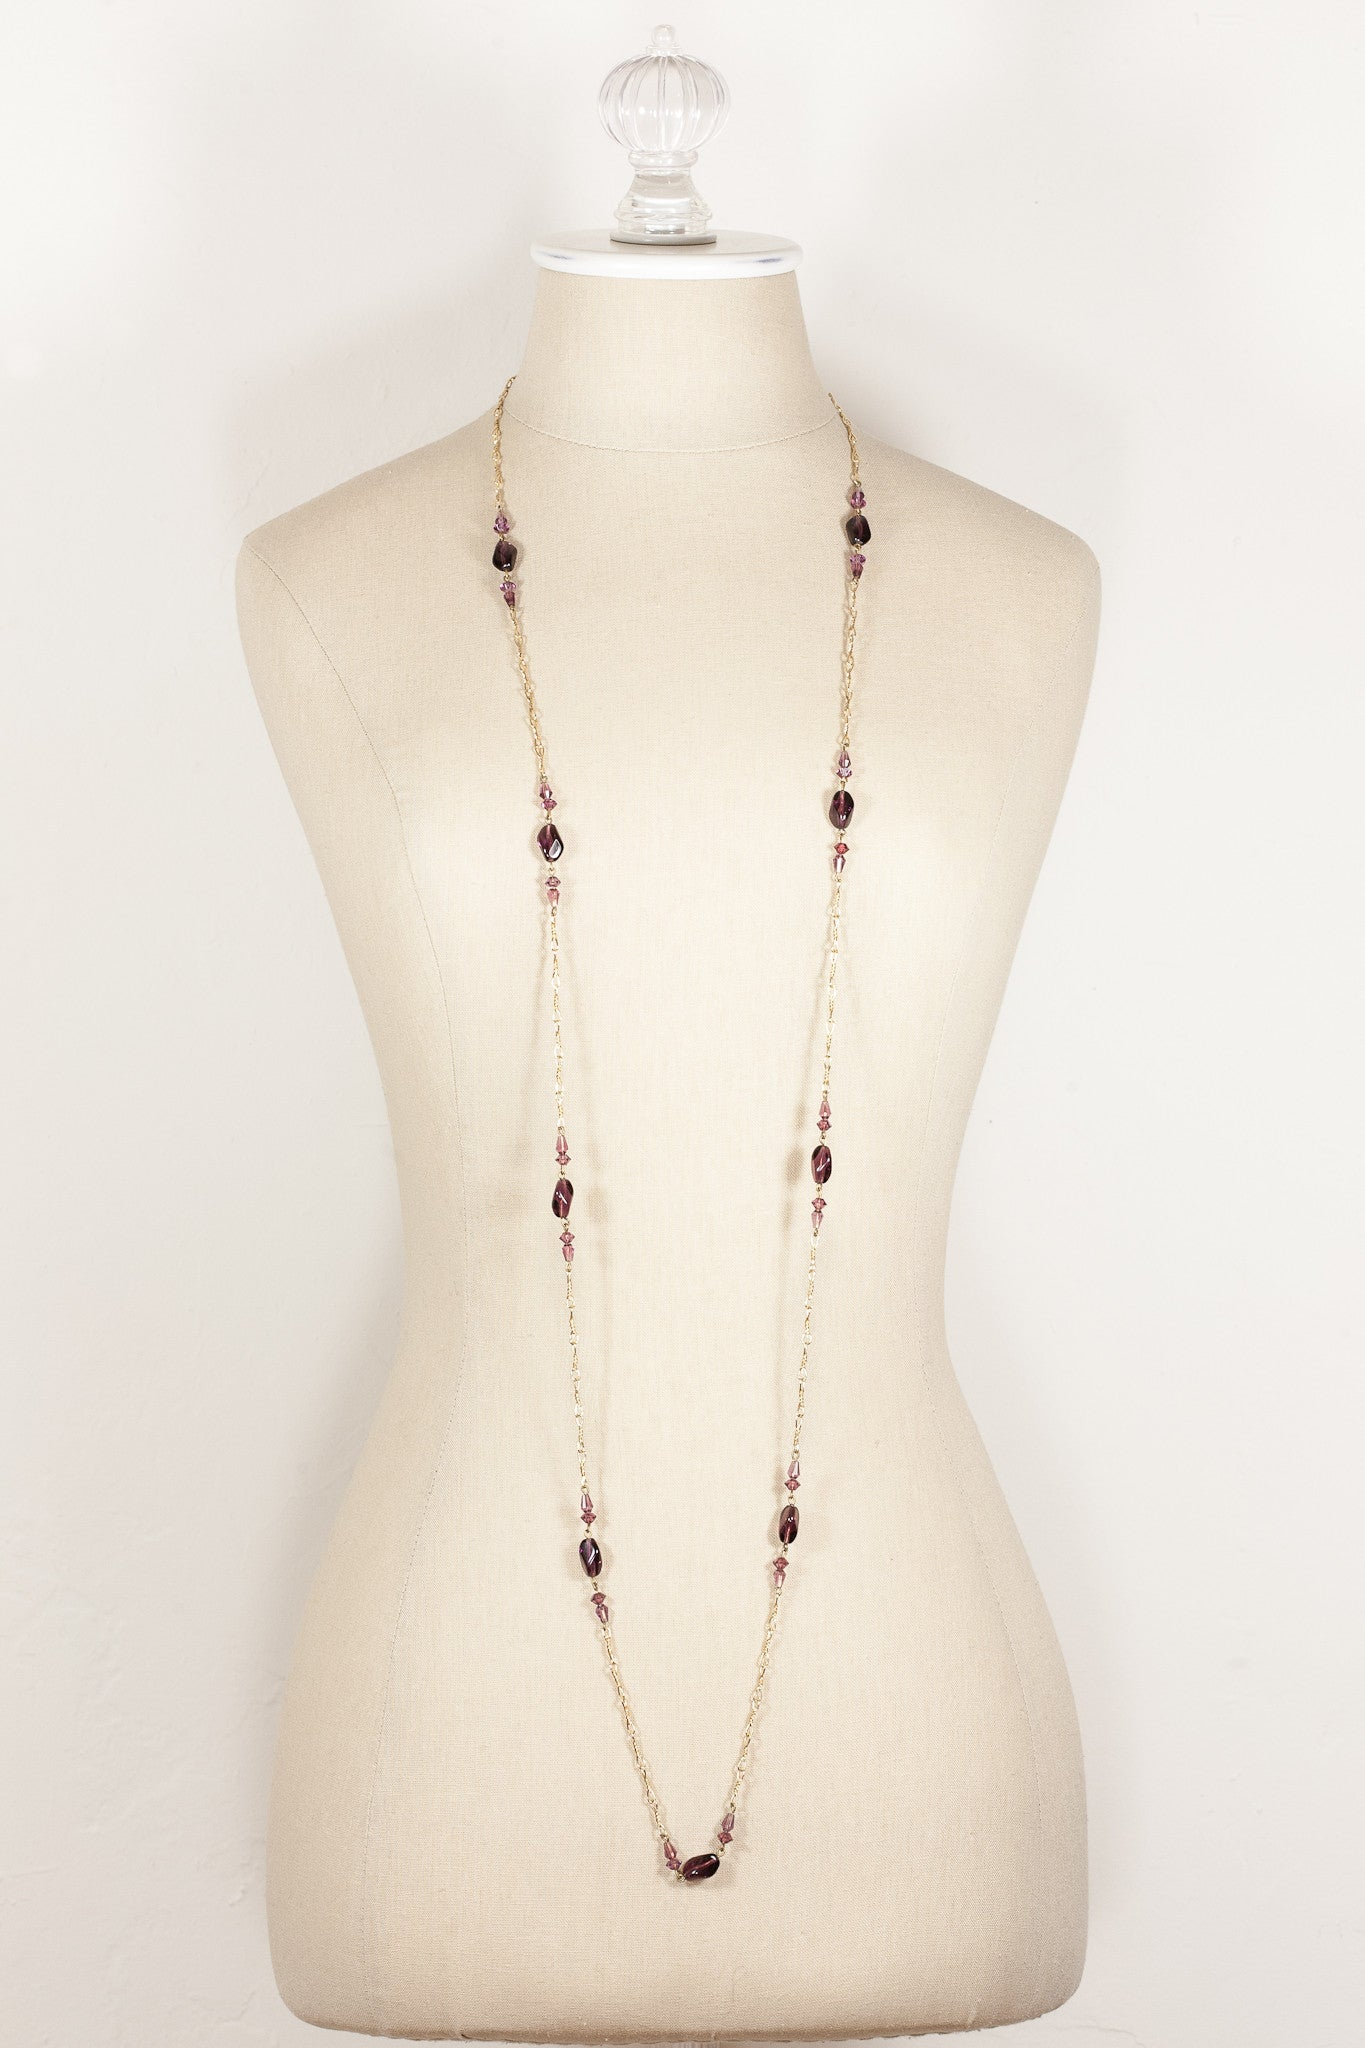 80's__Vintage__Purple Beaded Chain Link Necklace